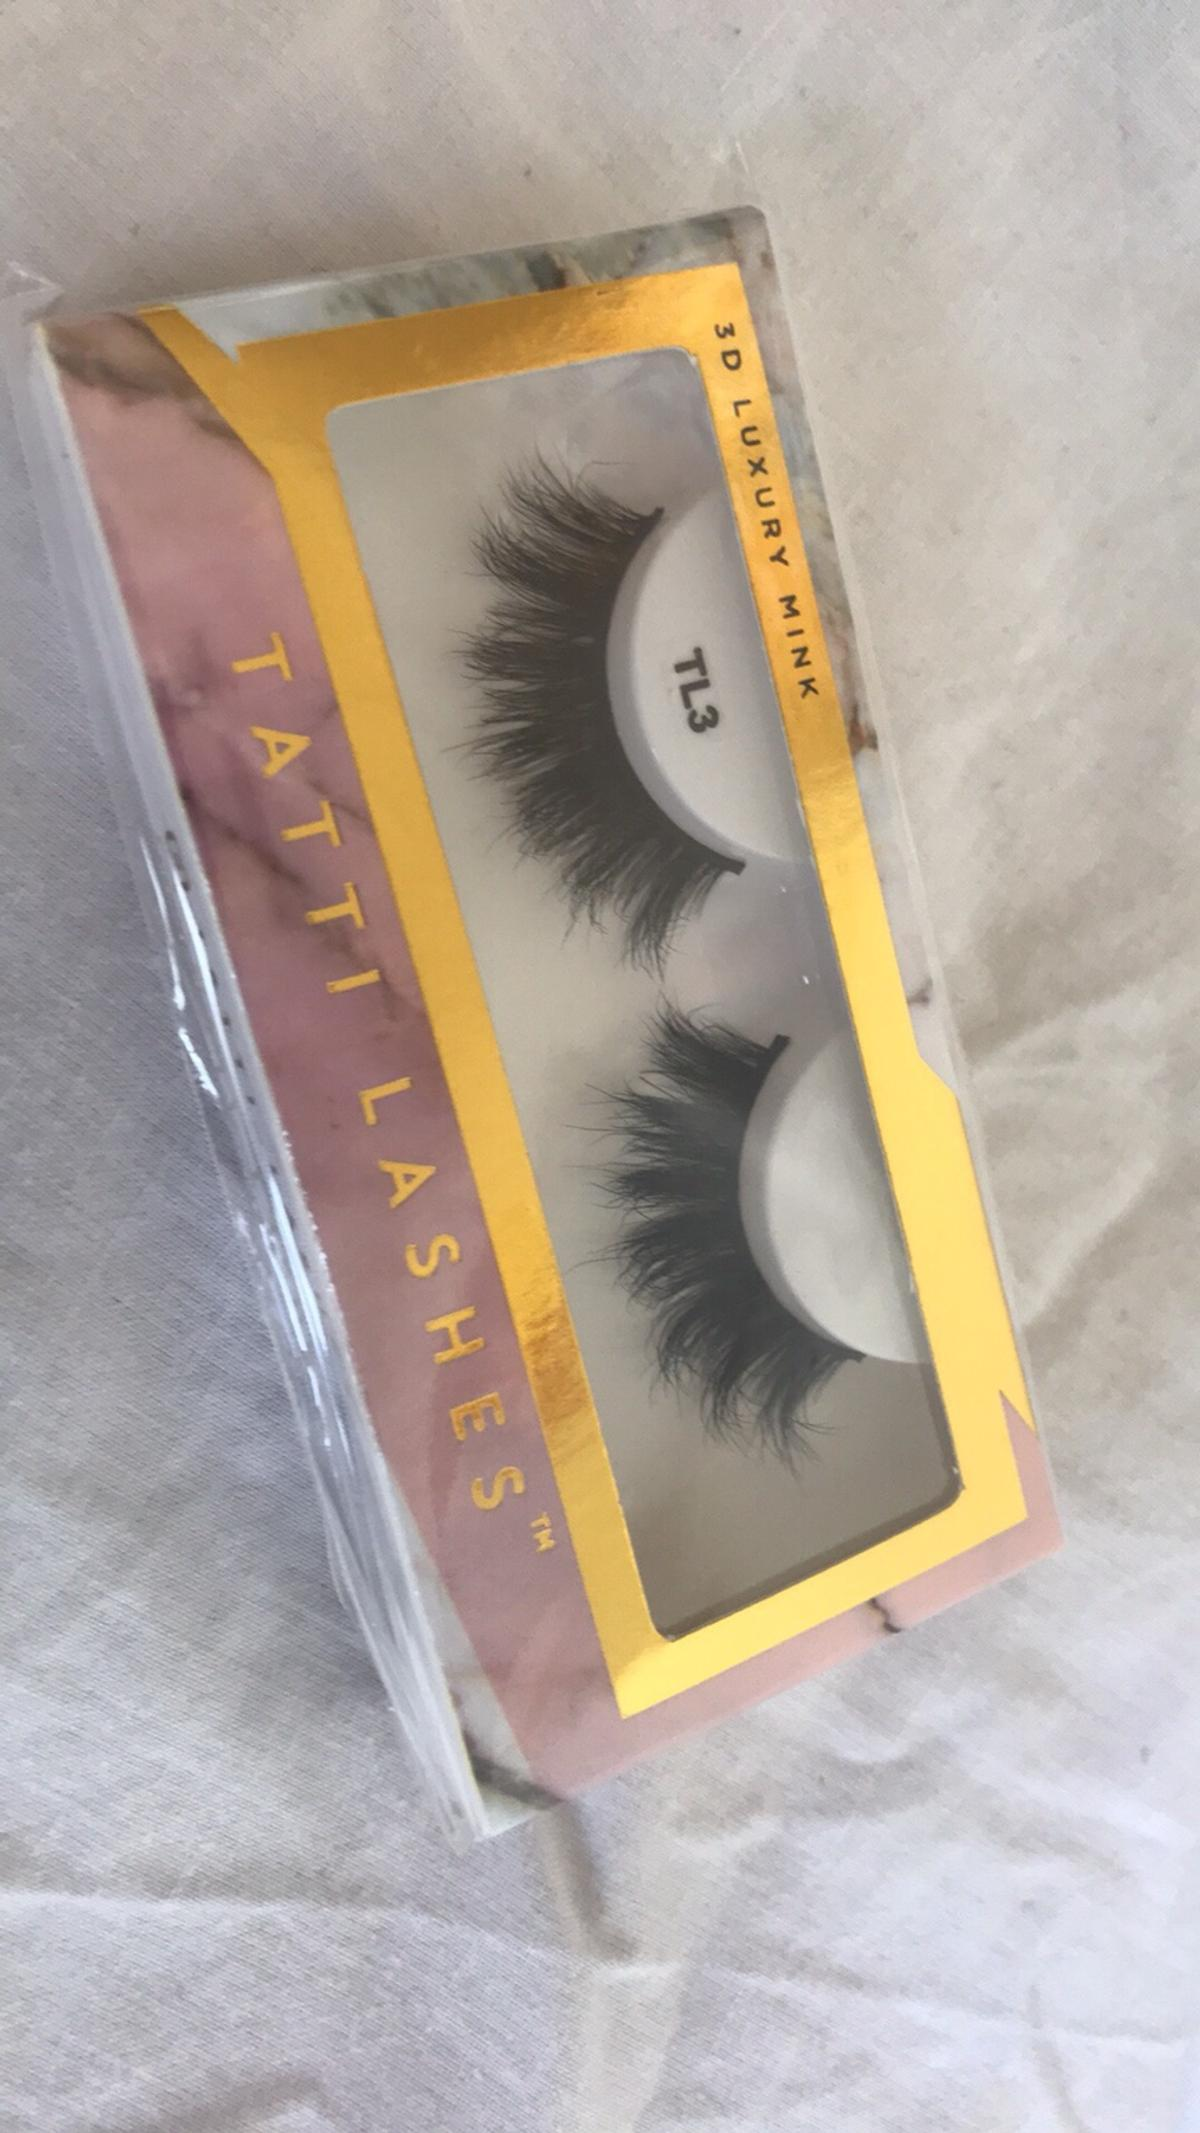 8eb98354eac Tatti 3D Luxury Mink Lashes T3 in N1 Hackney for £10.00 for sale ...